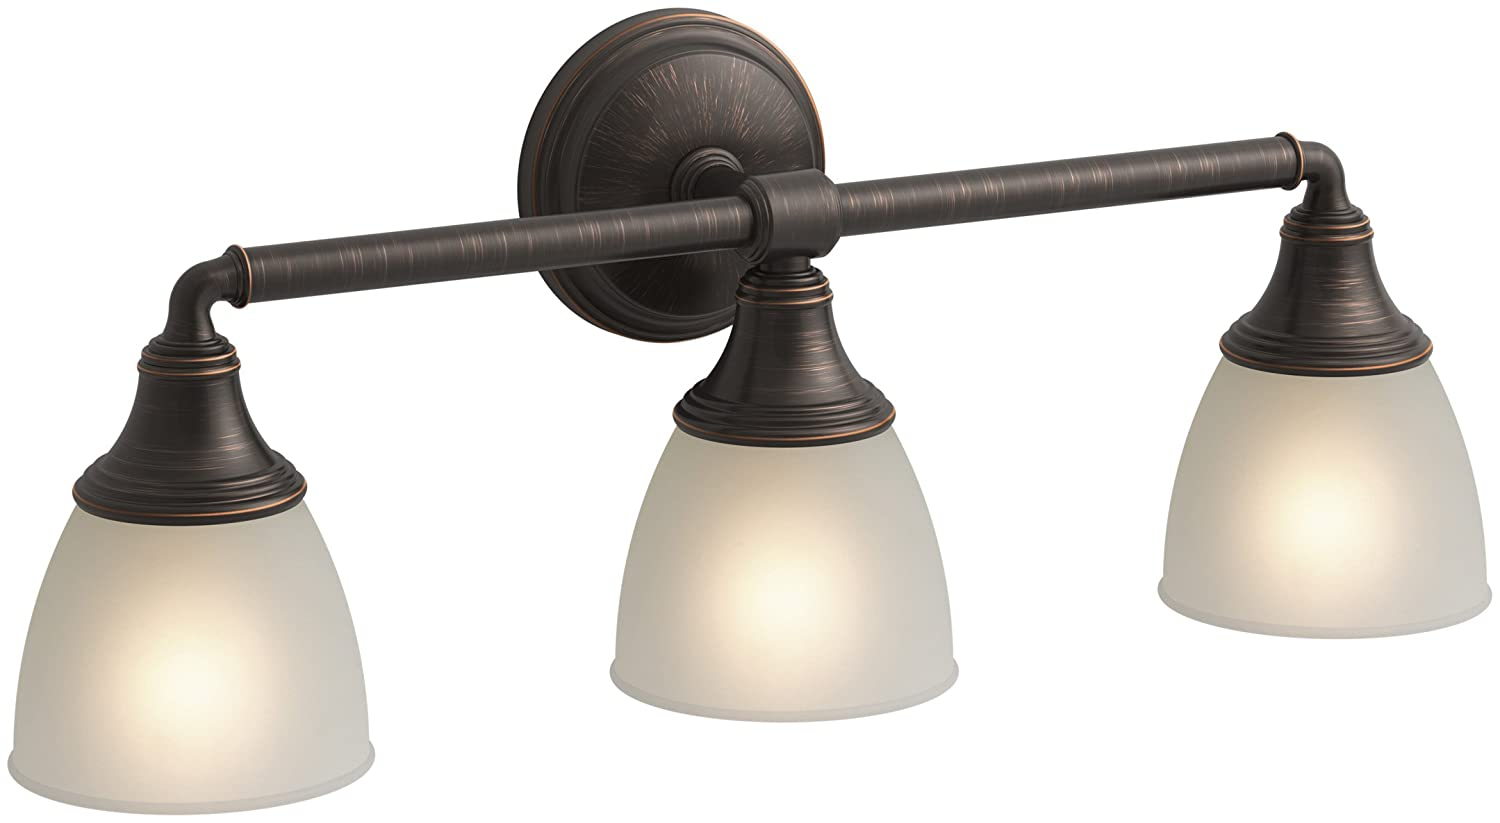 KOHLER K 10572 2BZ Devonshire Triple Wall Sconce Oil Rubbed Bronze